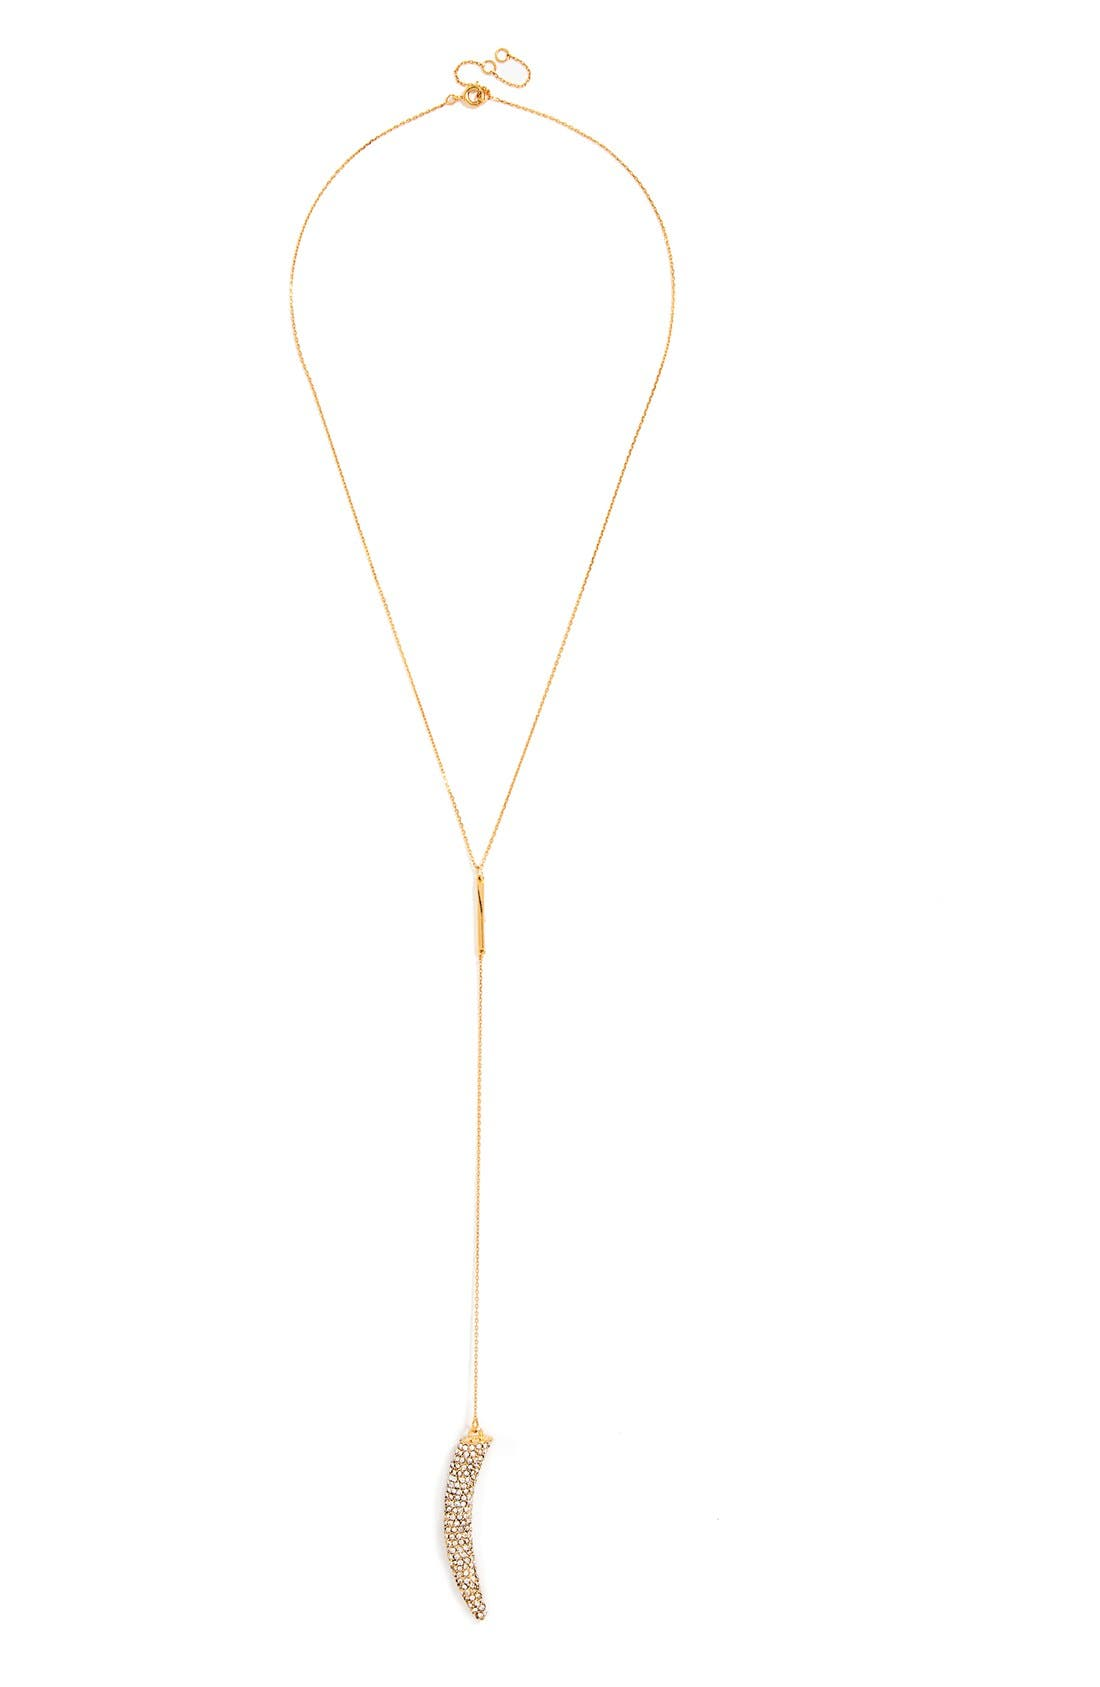 BAUBLEBAR 'Ice Horn' Chain Necklace, Main, color, 710